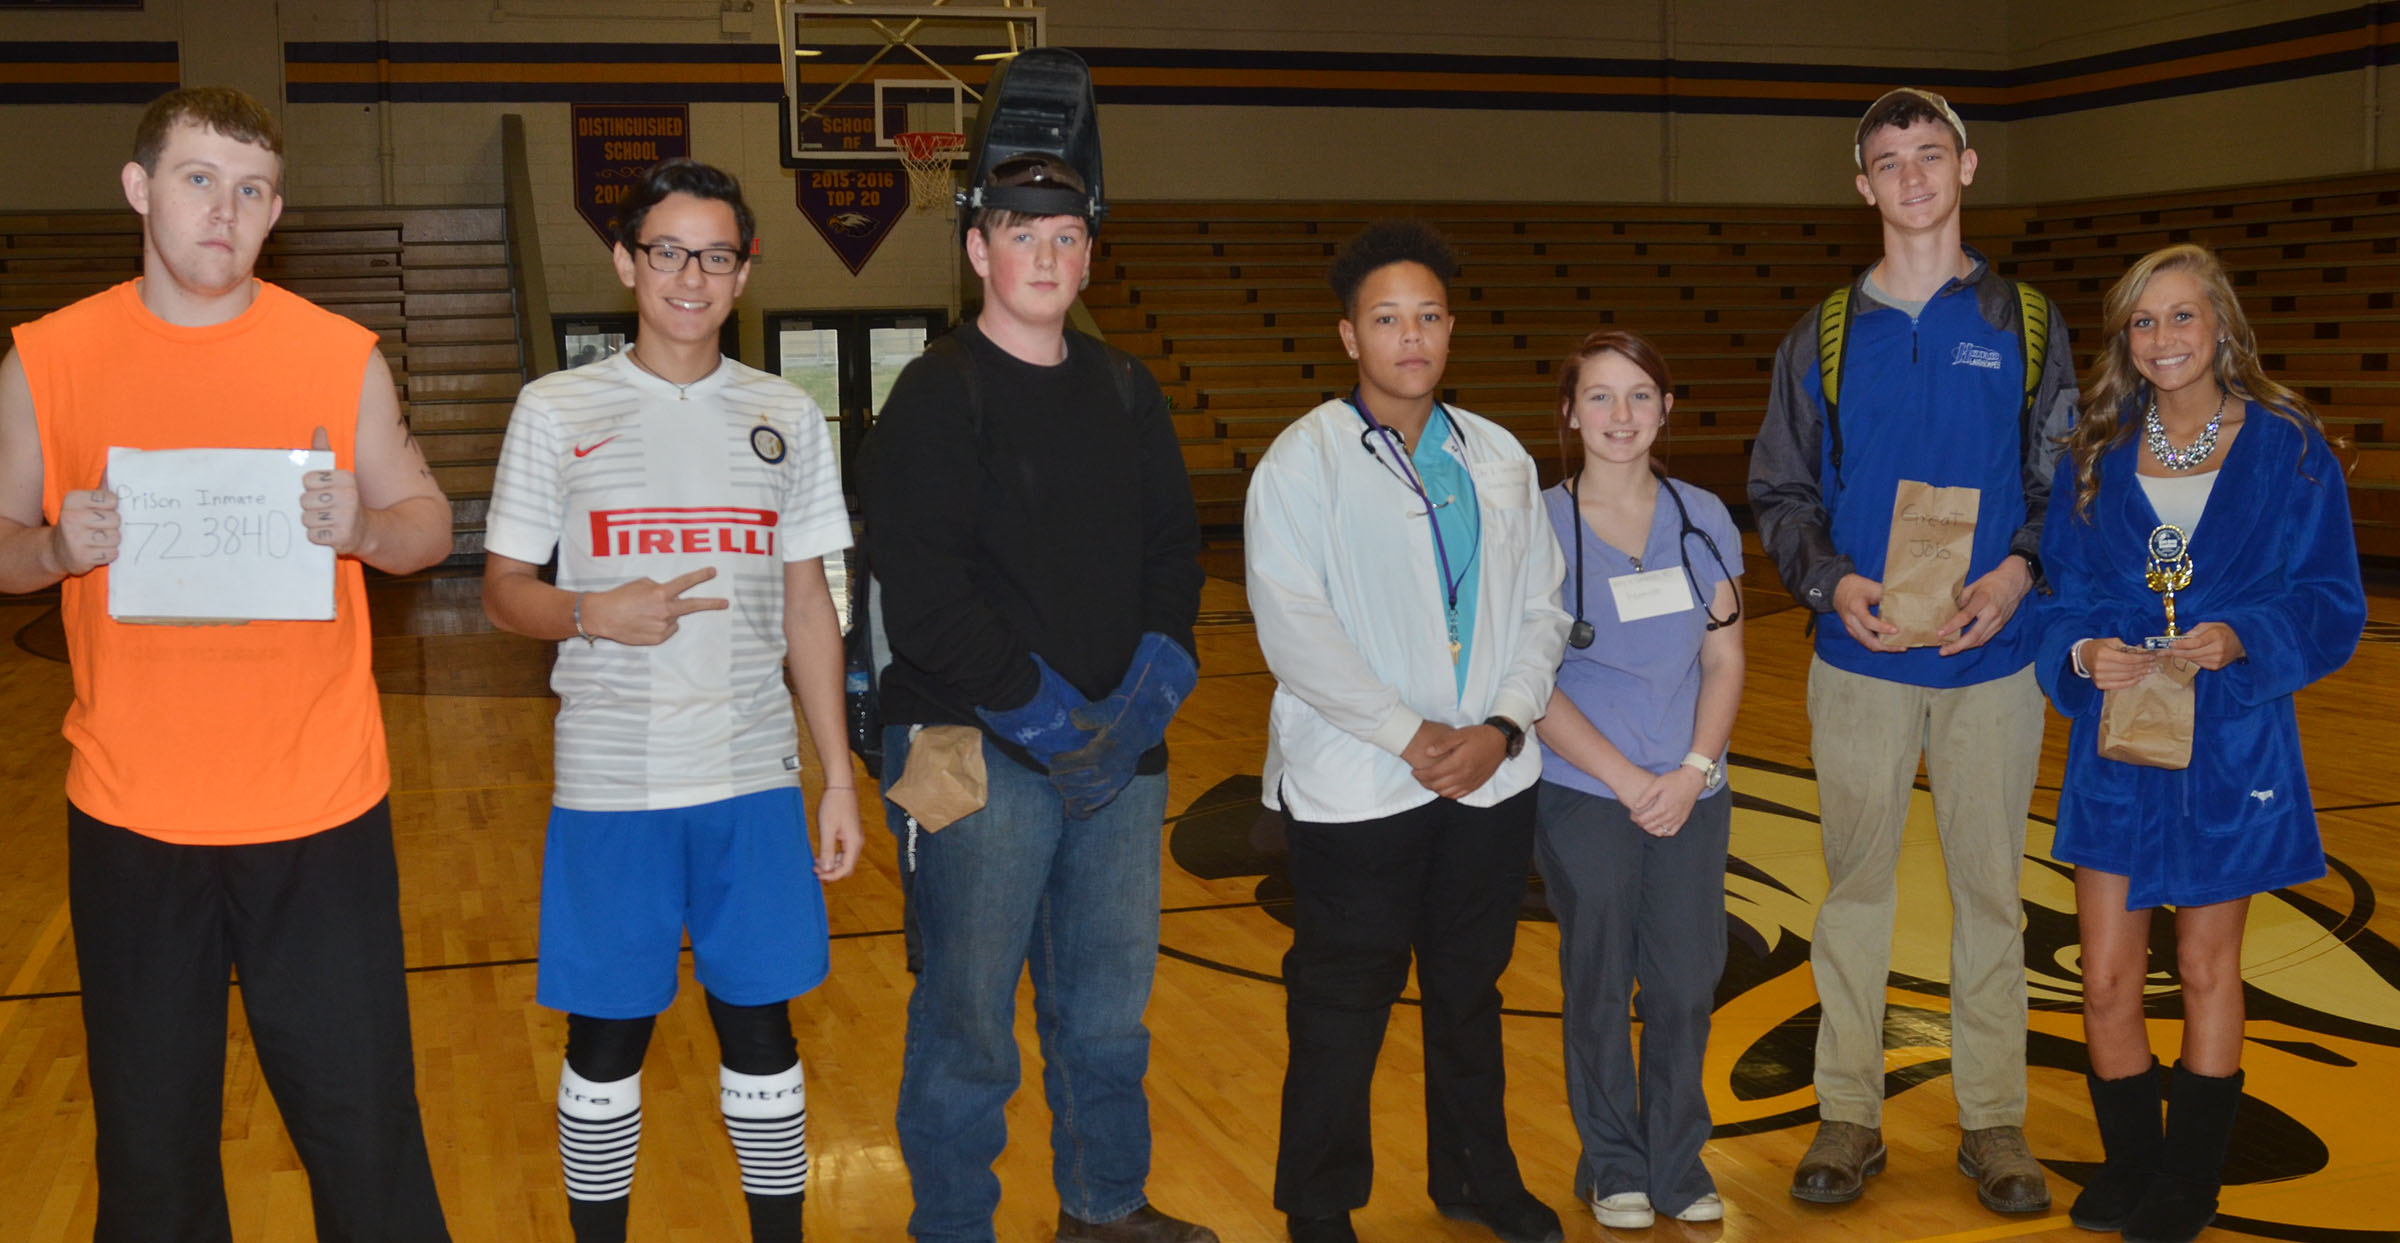 CHS students receive prizes for dressing the best on Future You College and Career Day.